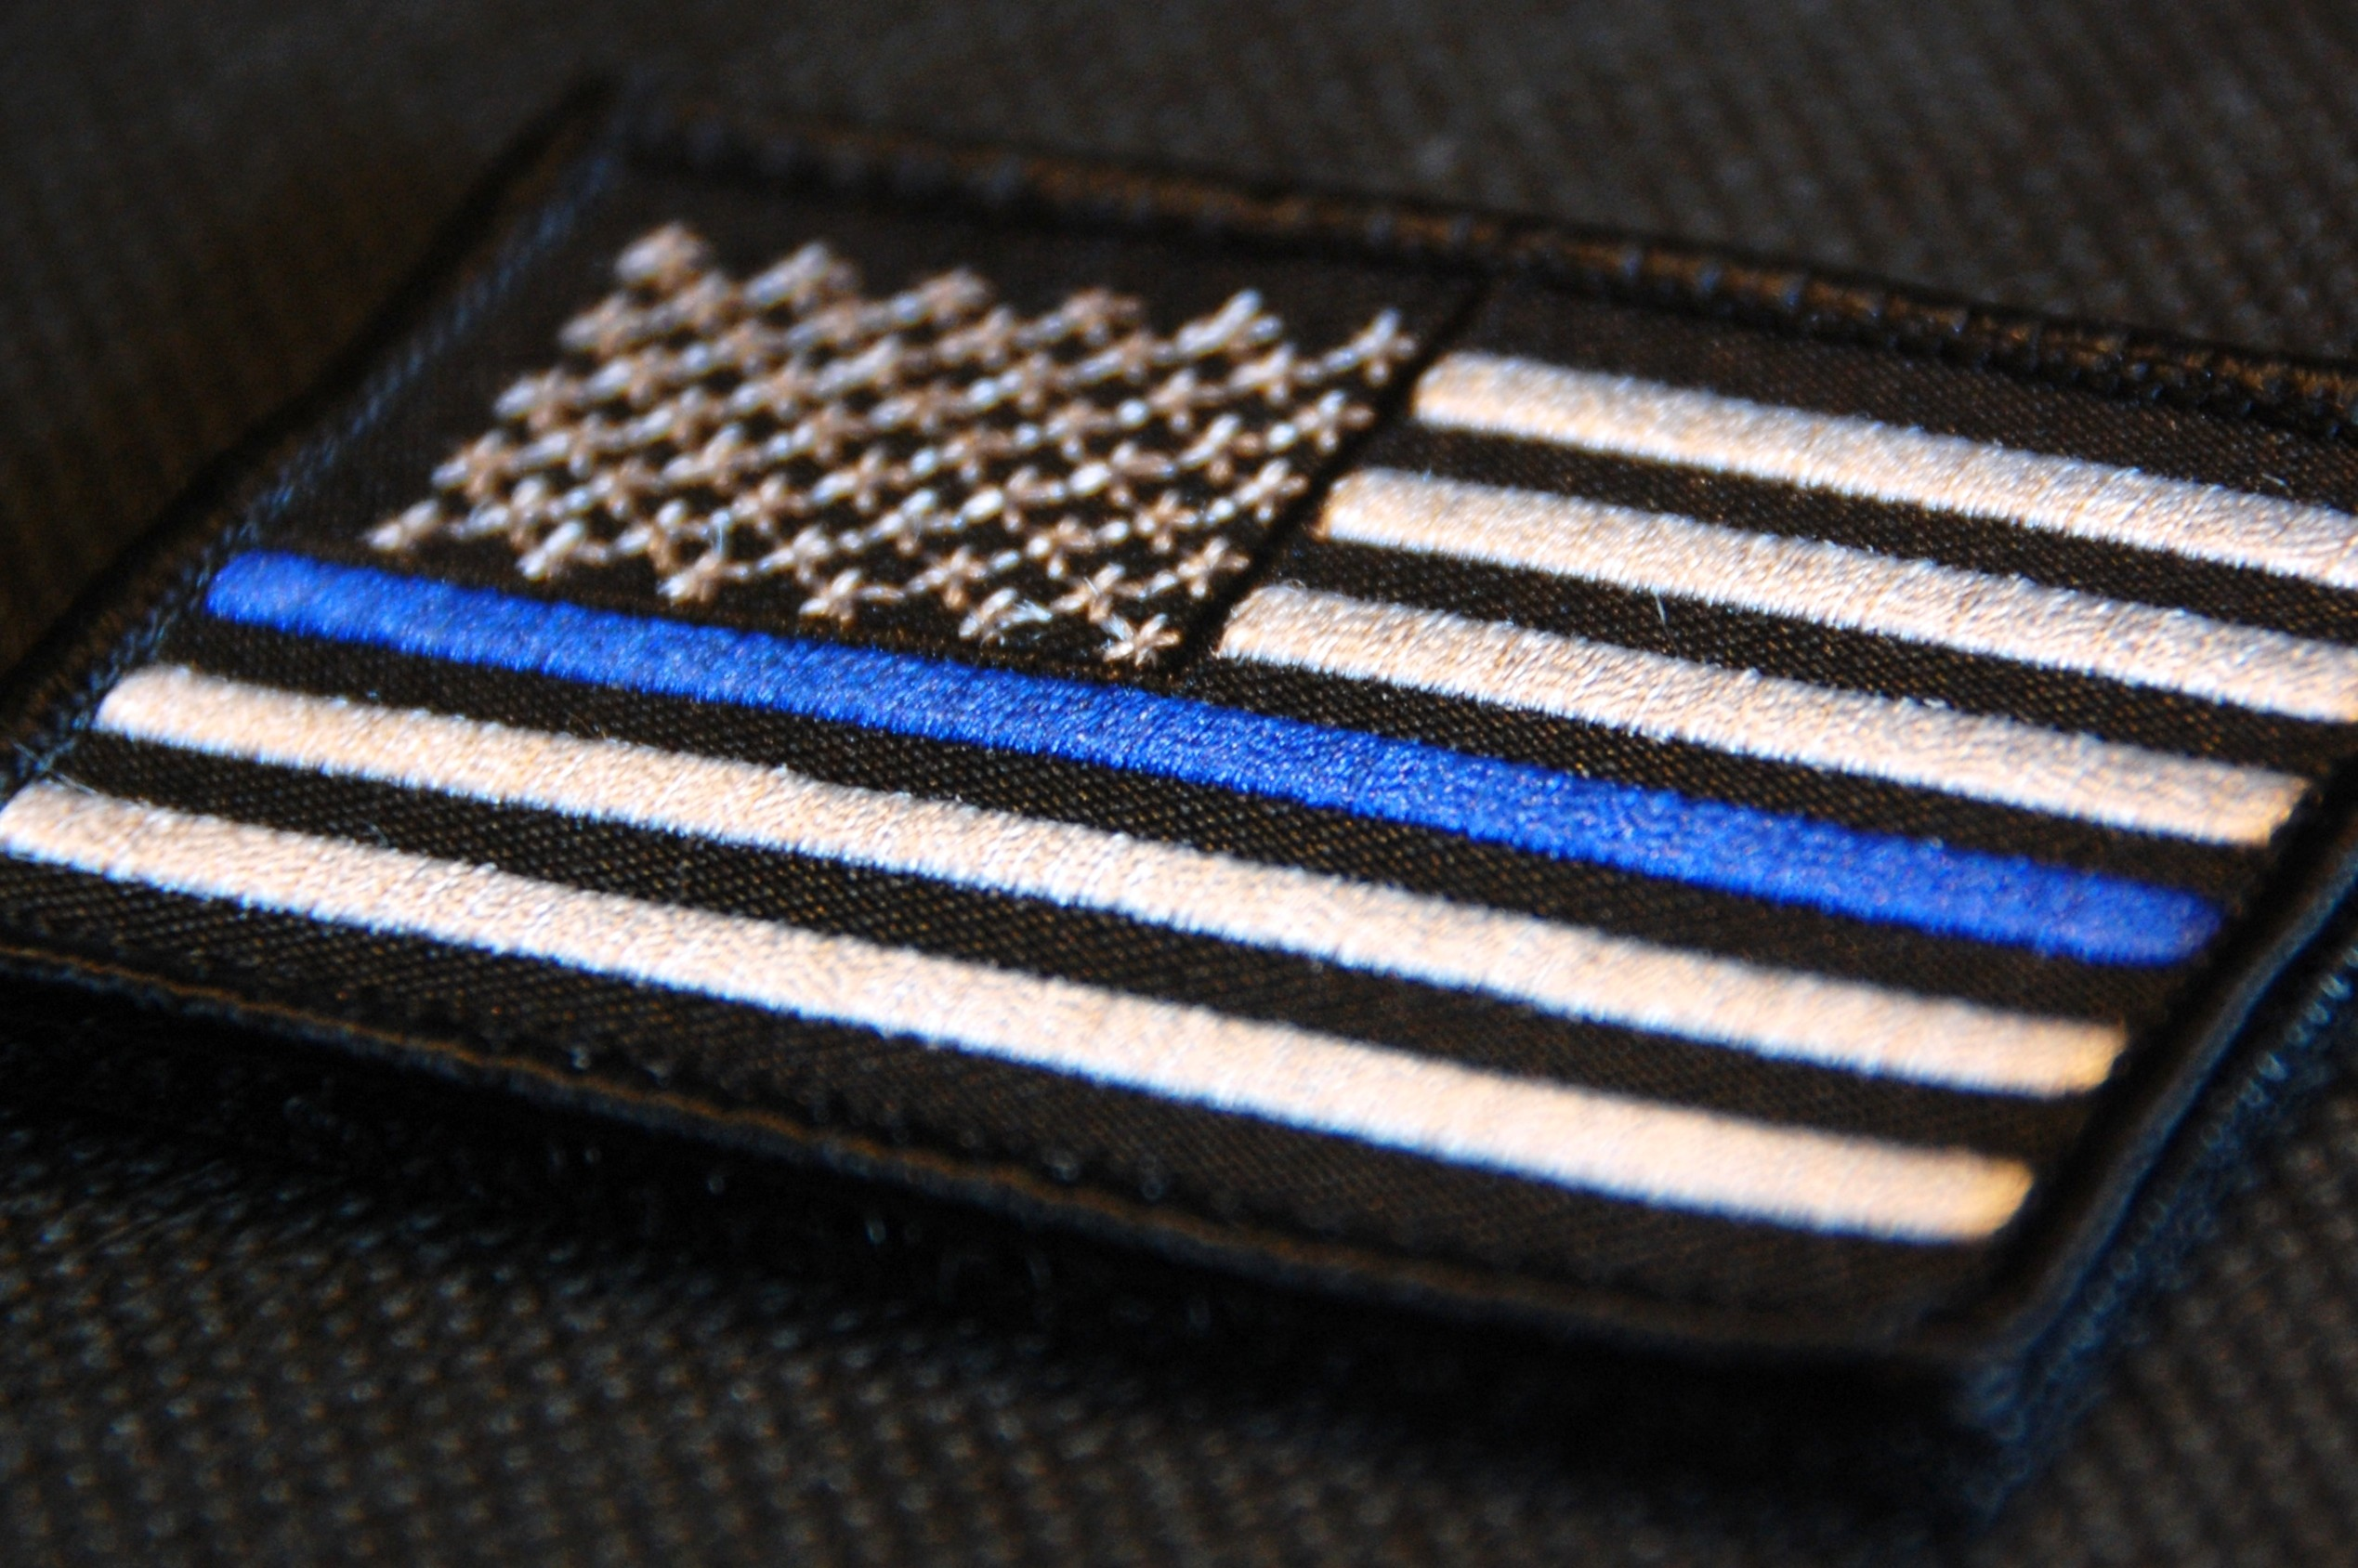 2538x1688 Thin Blue Line hd Wallpaper images